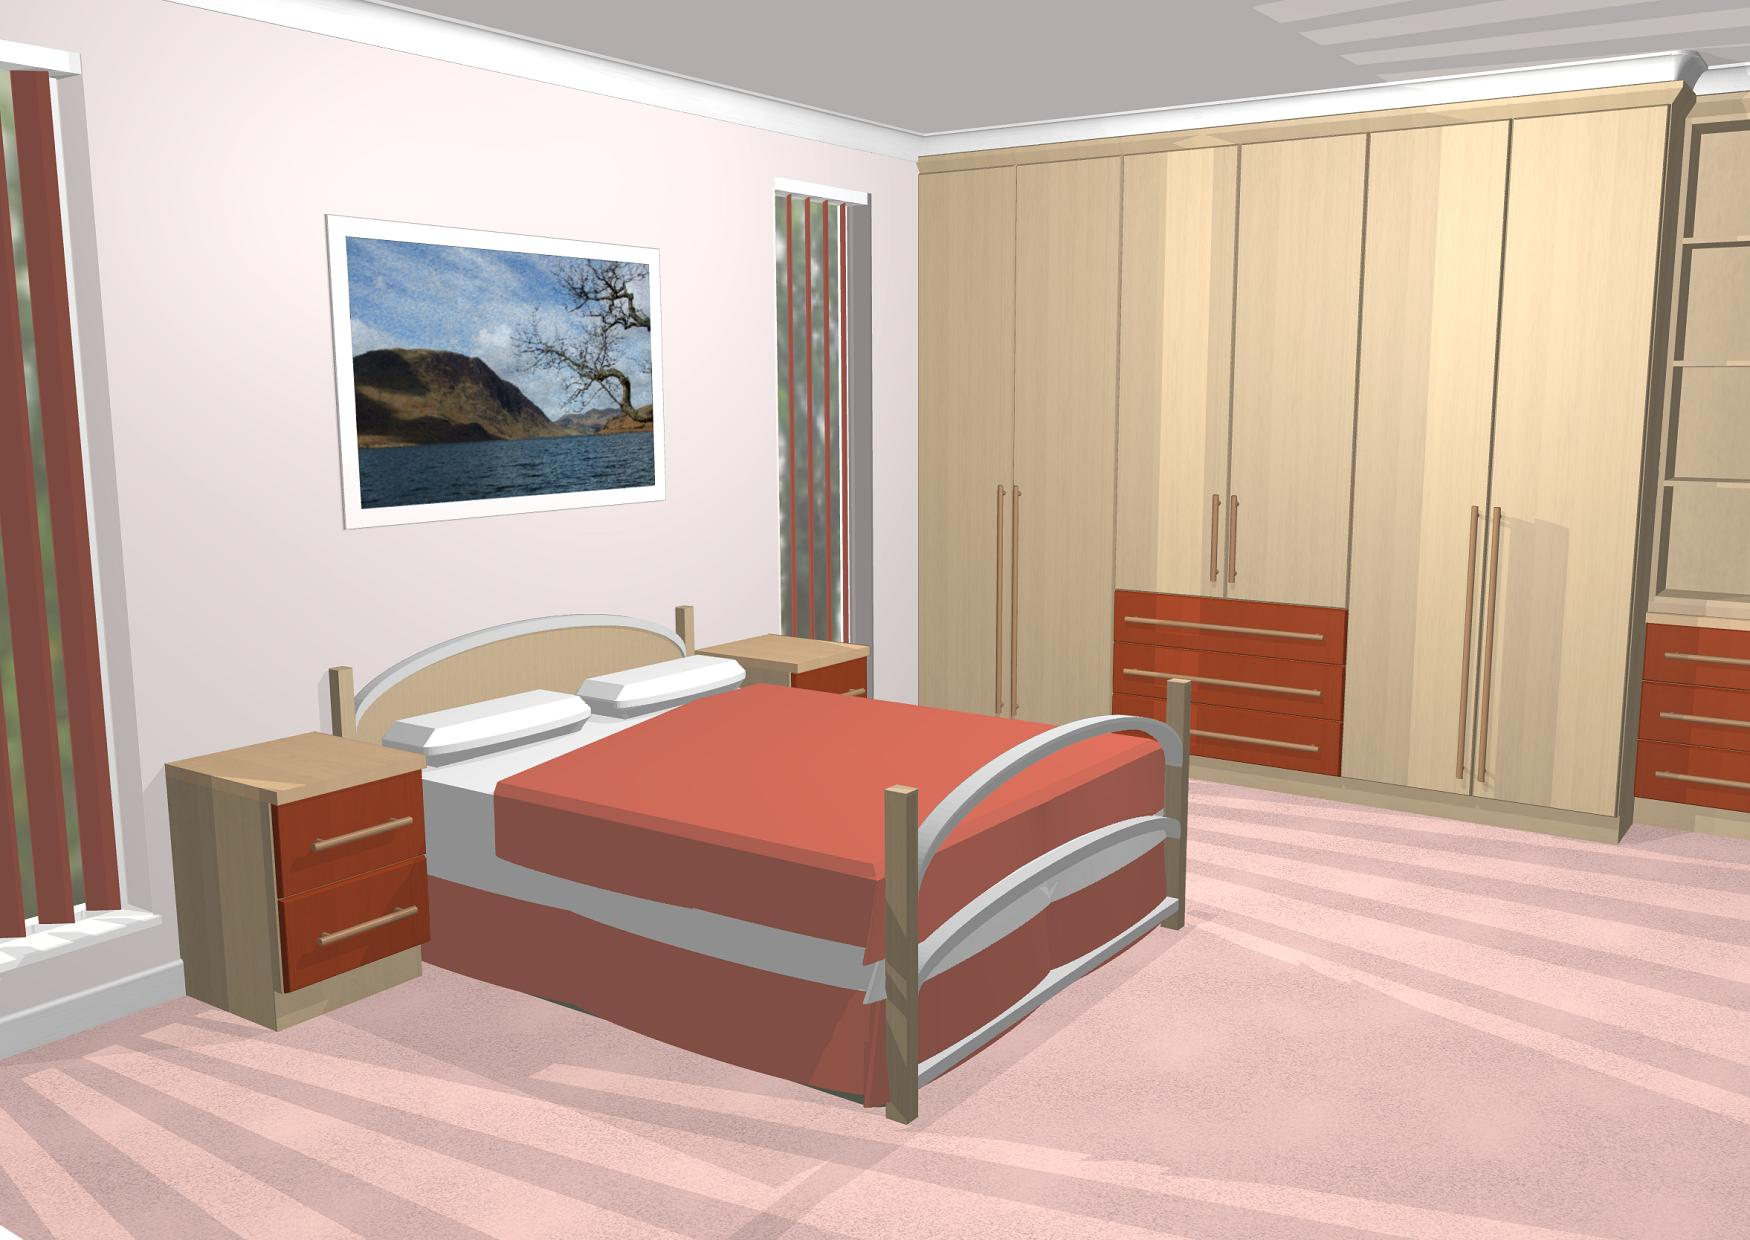 Normale Slaapkamer 3d Cad Gallery Image Of Bedroom With Long Handles And